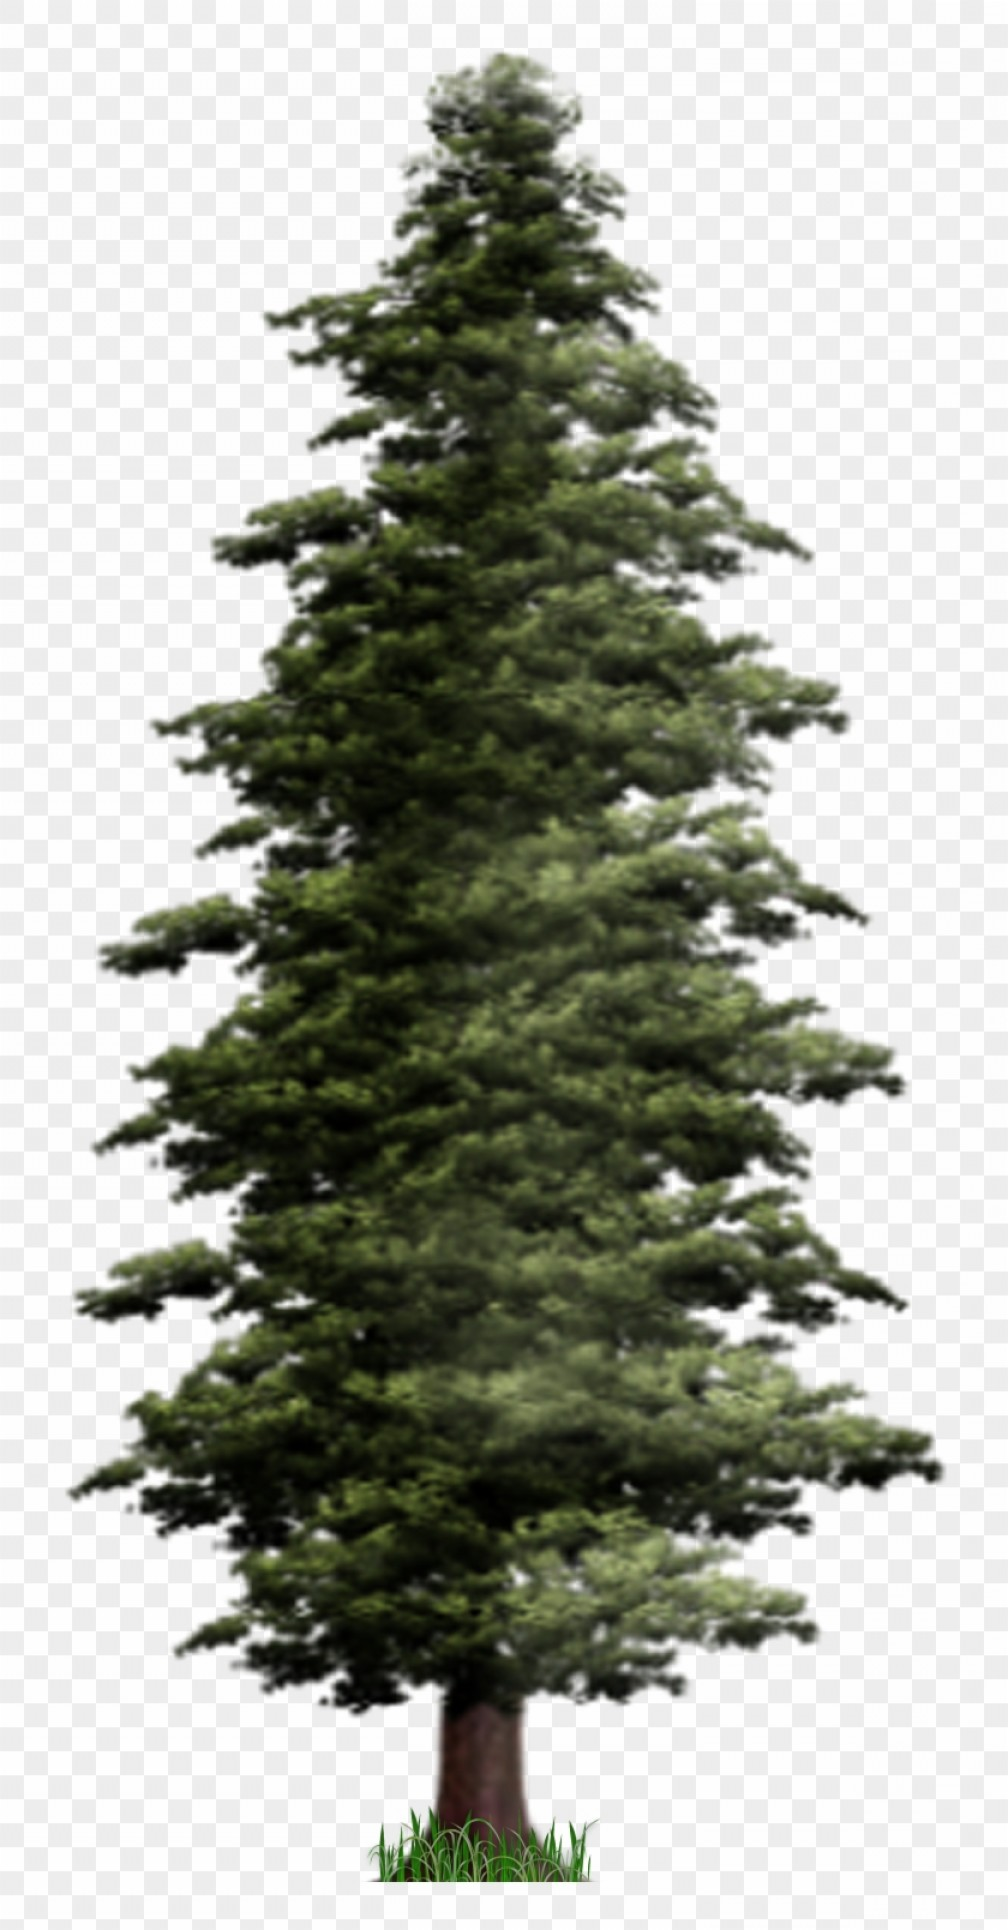 Migzmgnntall Pine Tree Silhouette Download Pine Png.